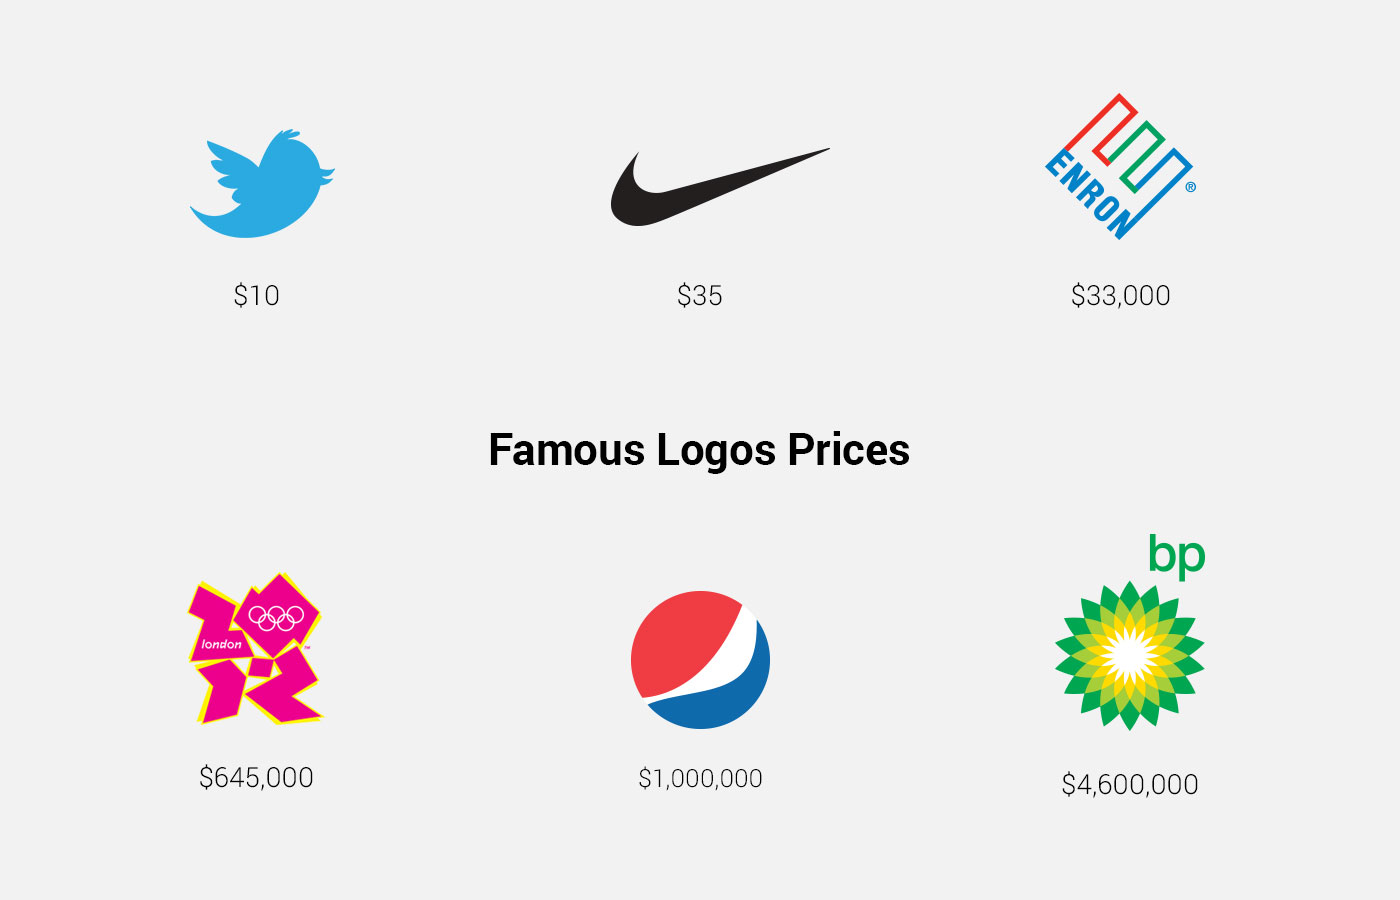 How much famous logos cost